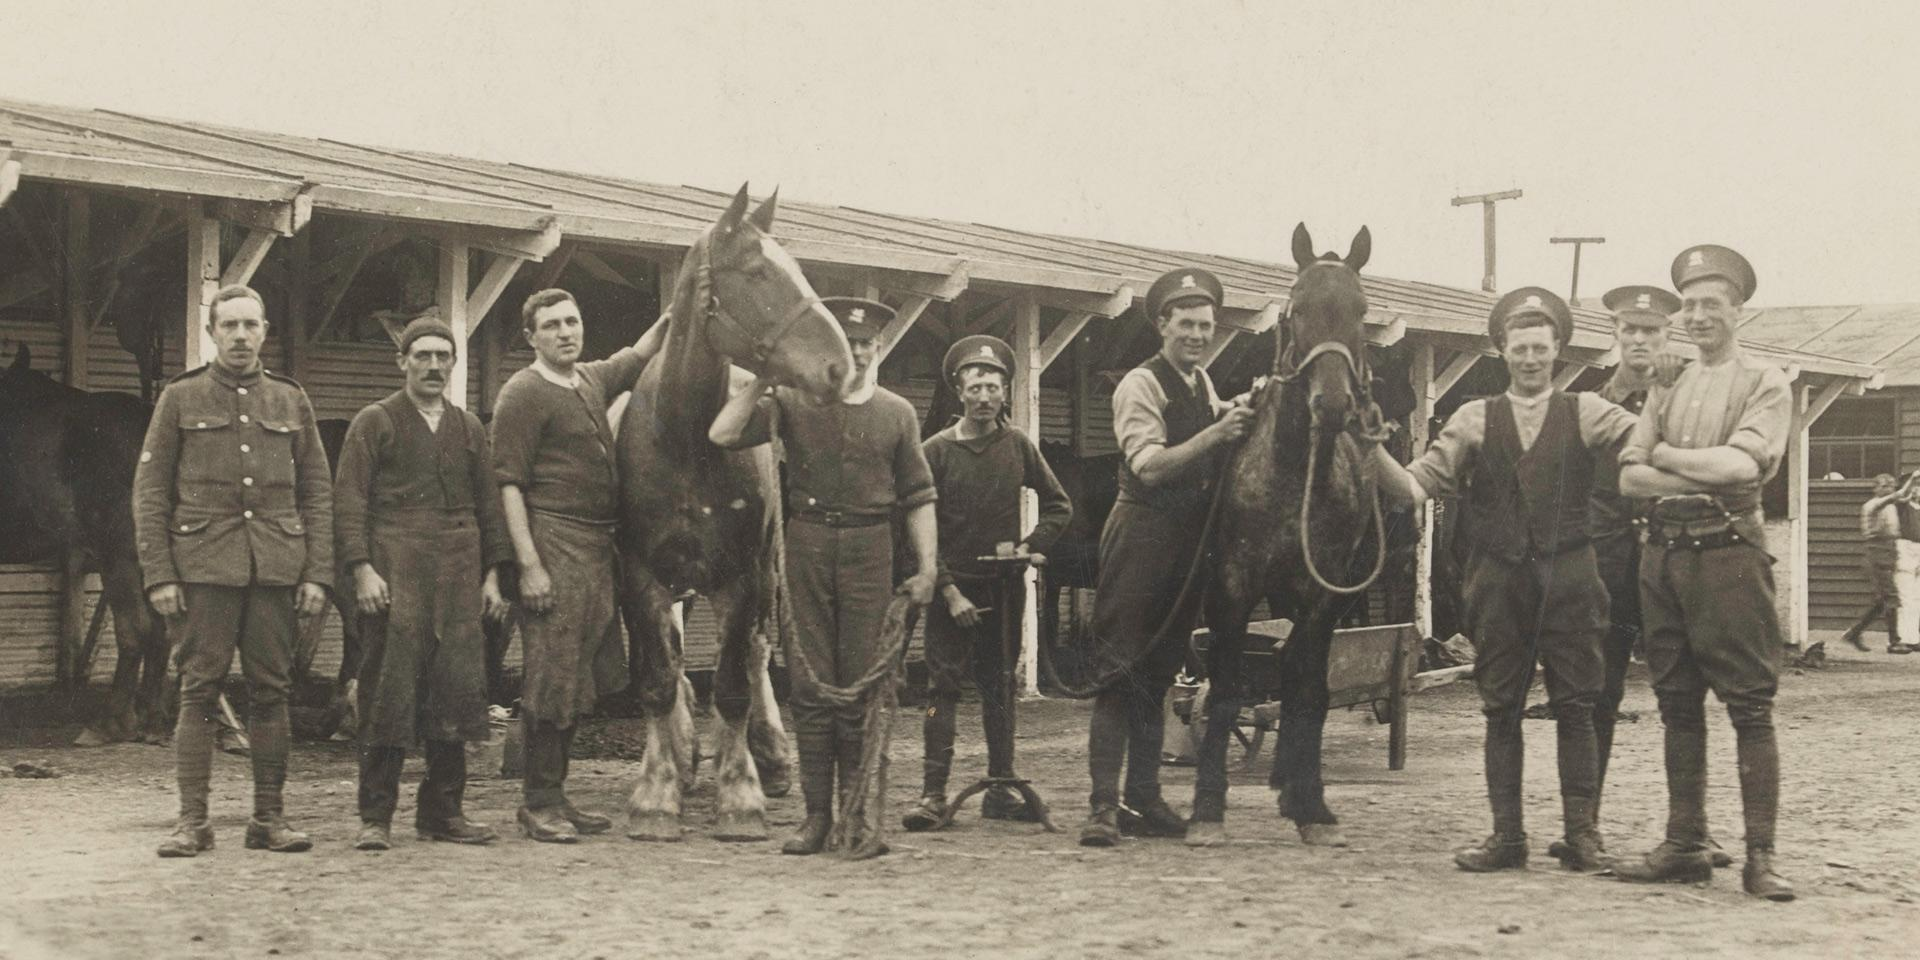 Stables of The Buffs (East Kent) Regiment, c1914